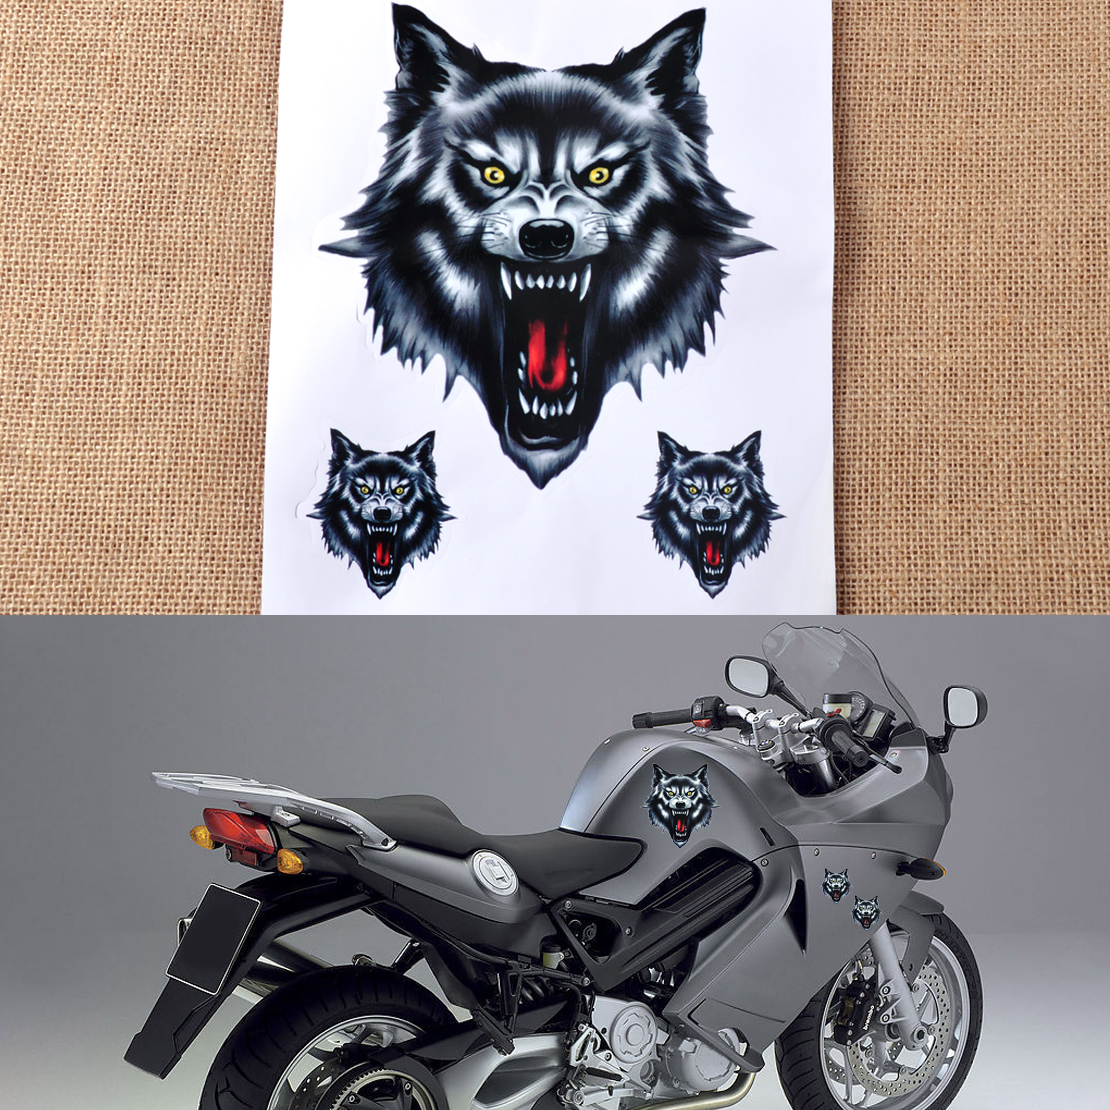 Wolf Head Decal Vinyl Sticker fit for Motorcycle Motorbike Car Truck Universal